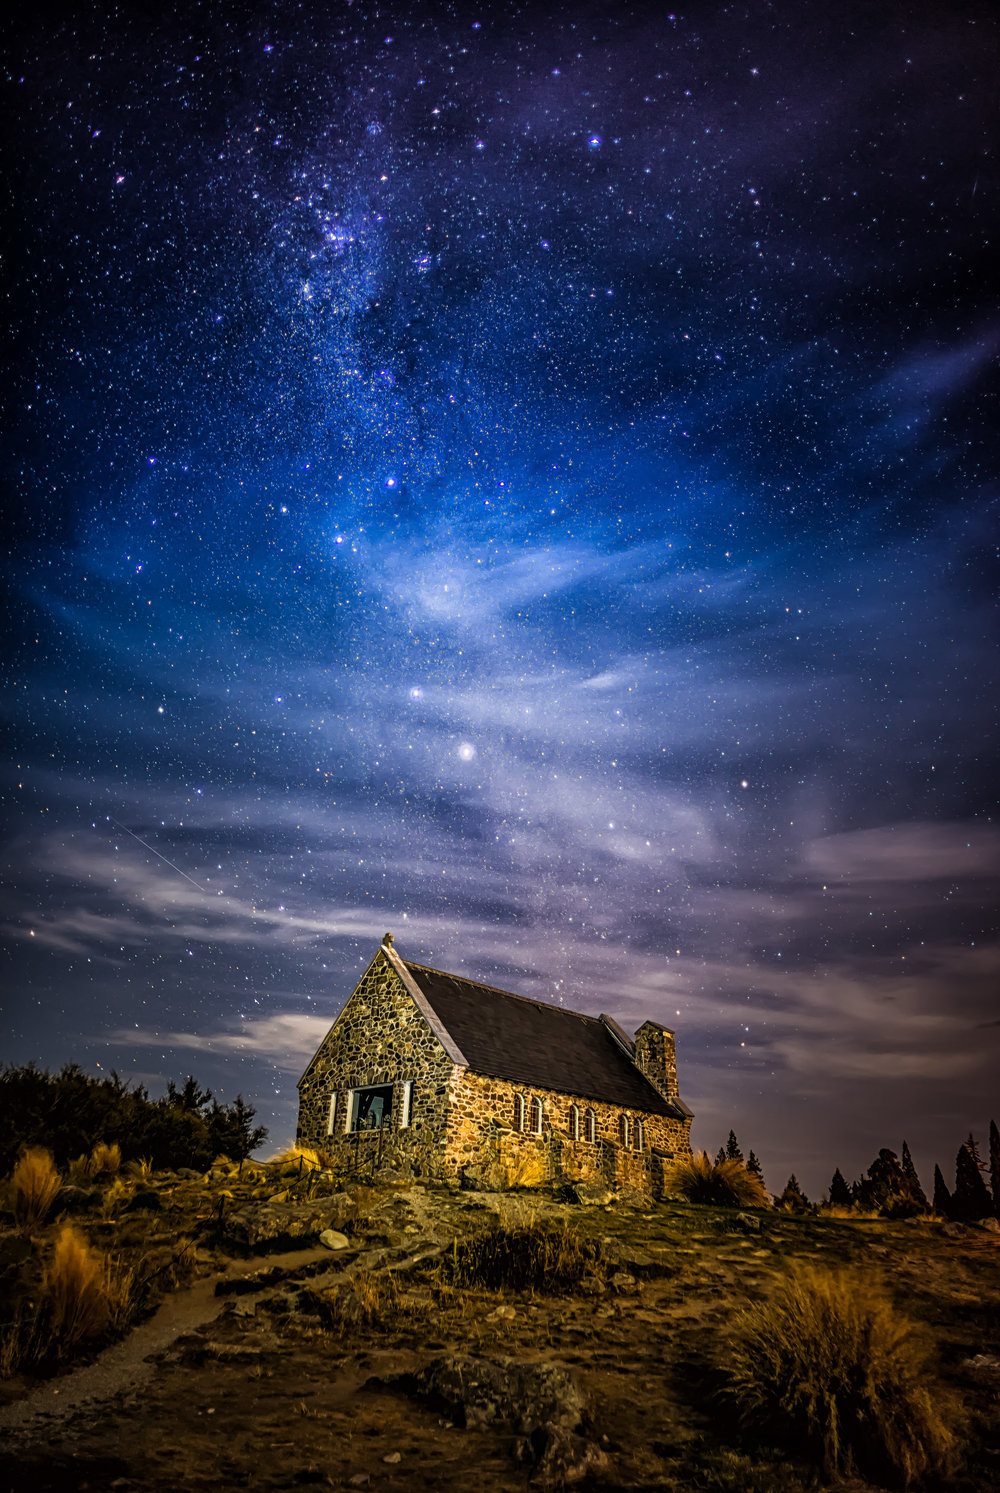 Chruch of the Good Shepherd - Lake Tekapo New Zealand-4912 x 7360-2.jpg